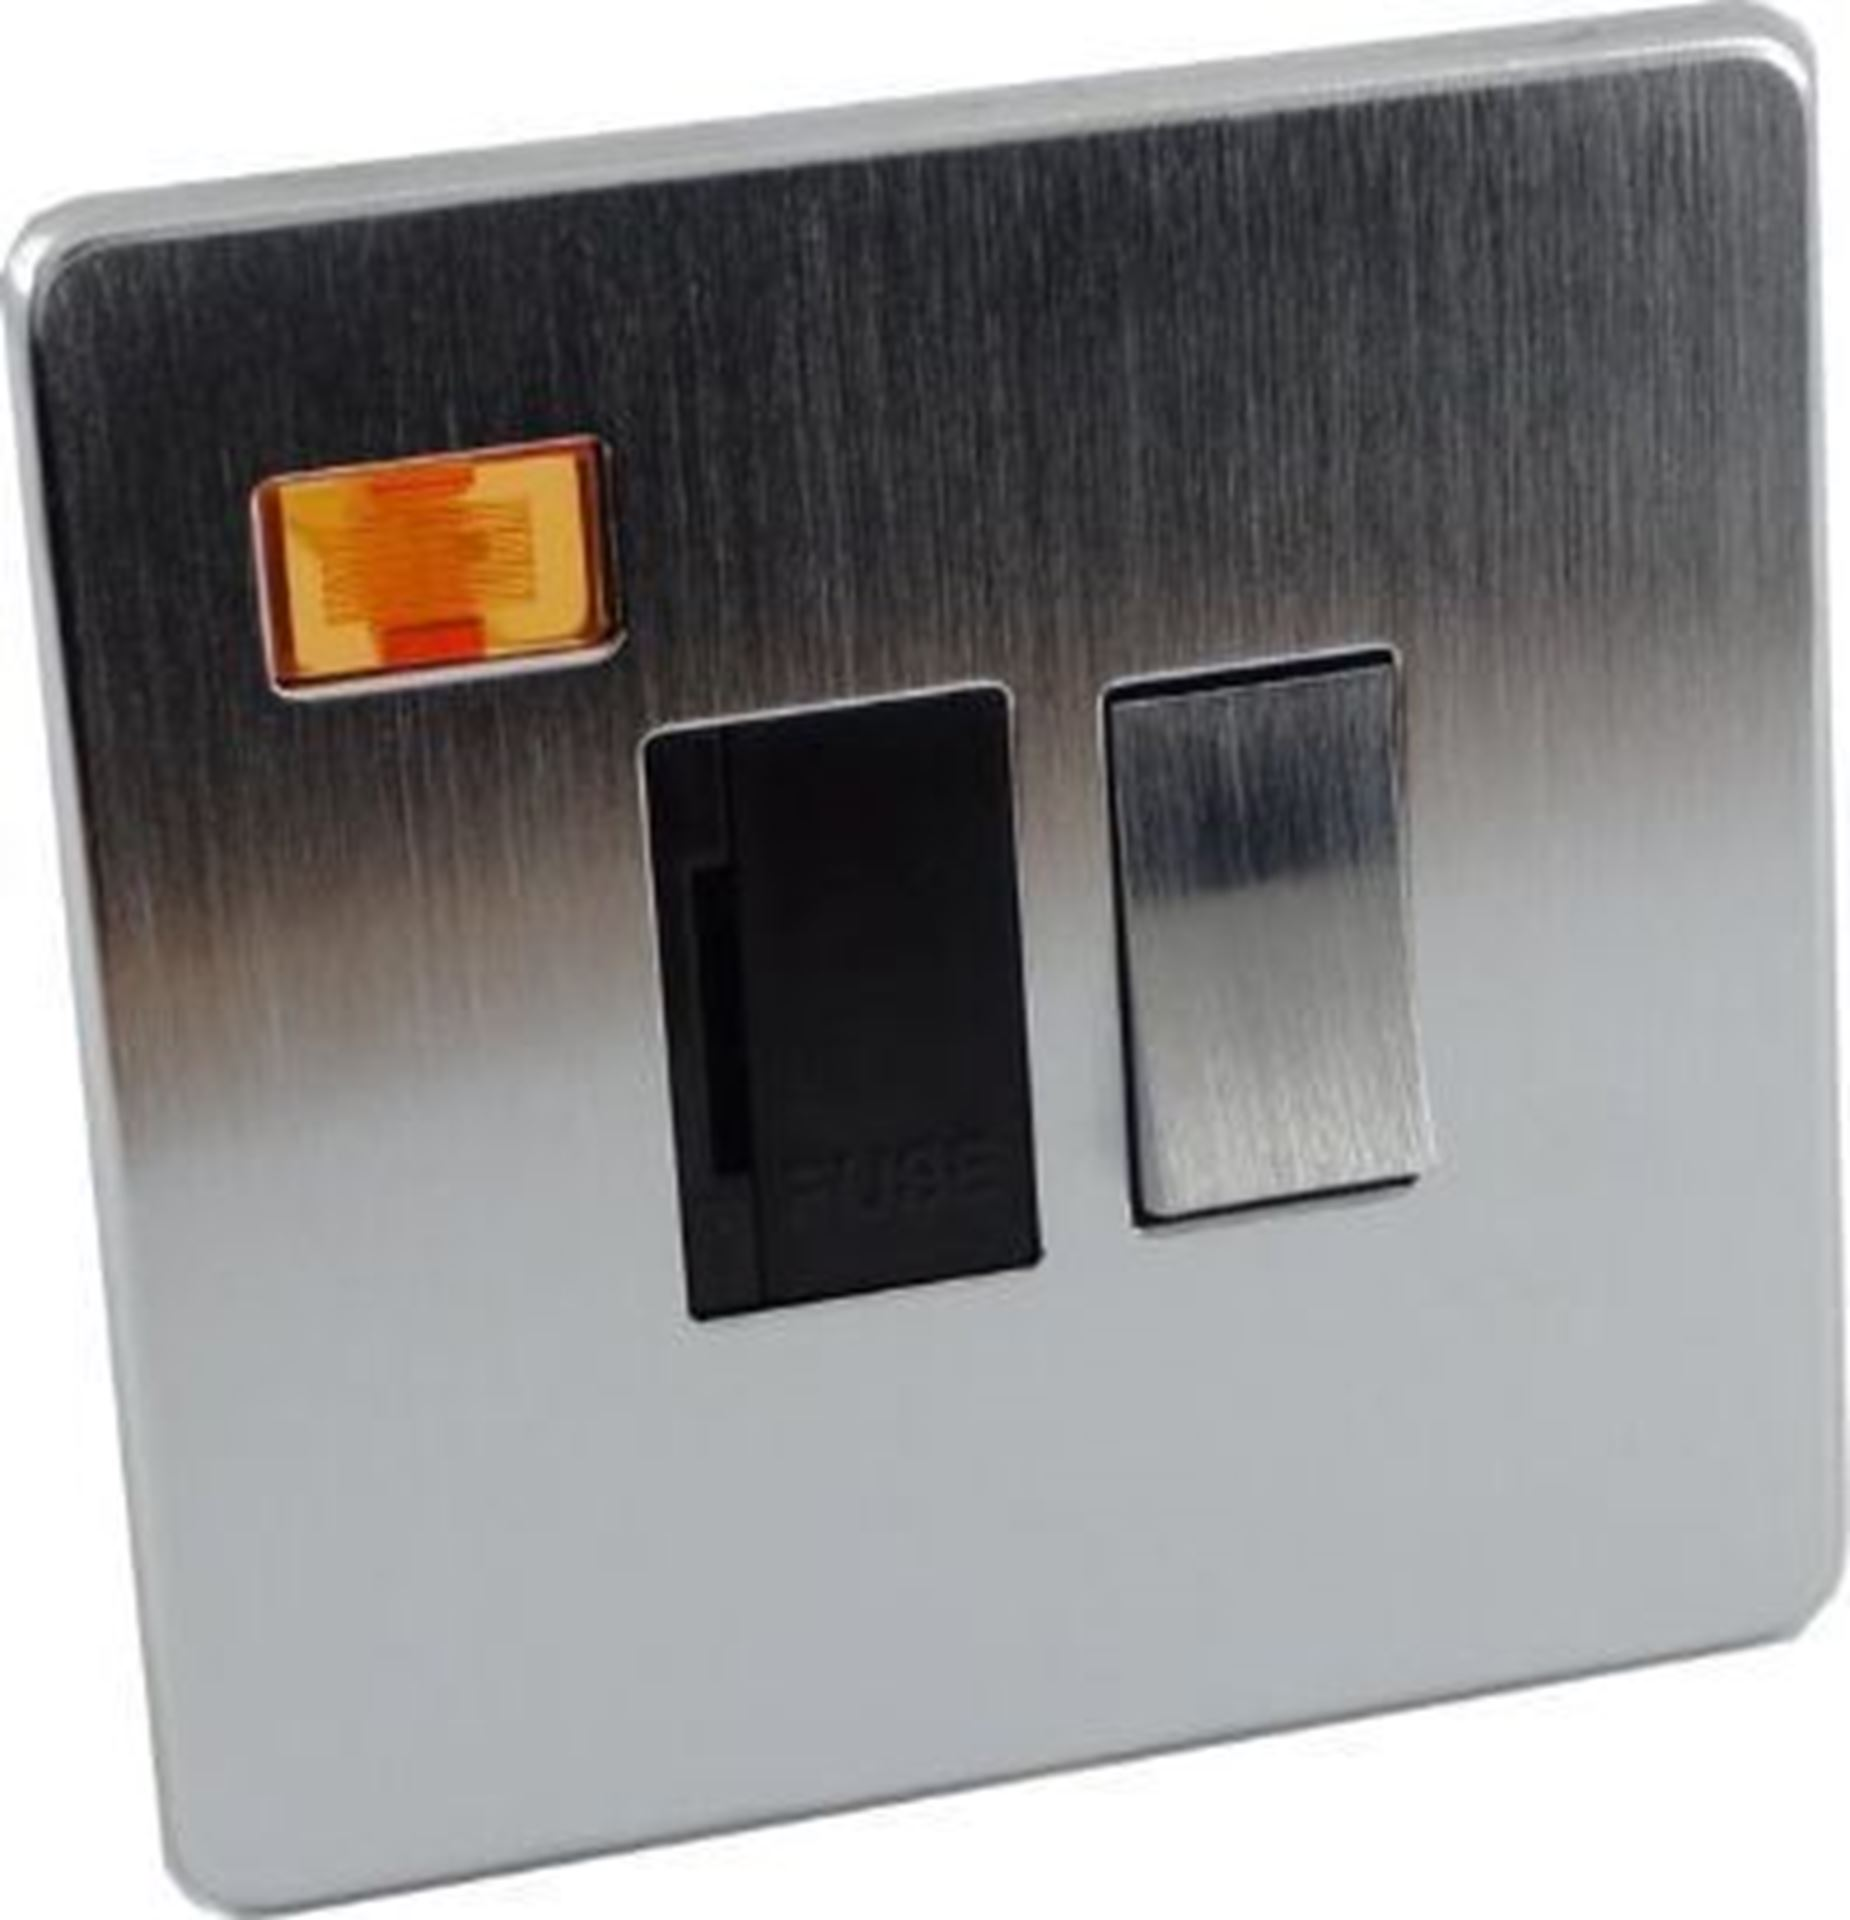 Crabtree Platinum Satin Chrome 13A Switched Fuse Spur with Neon 7832/3SC